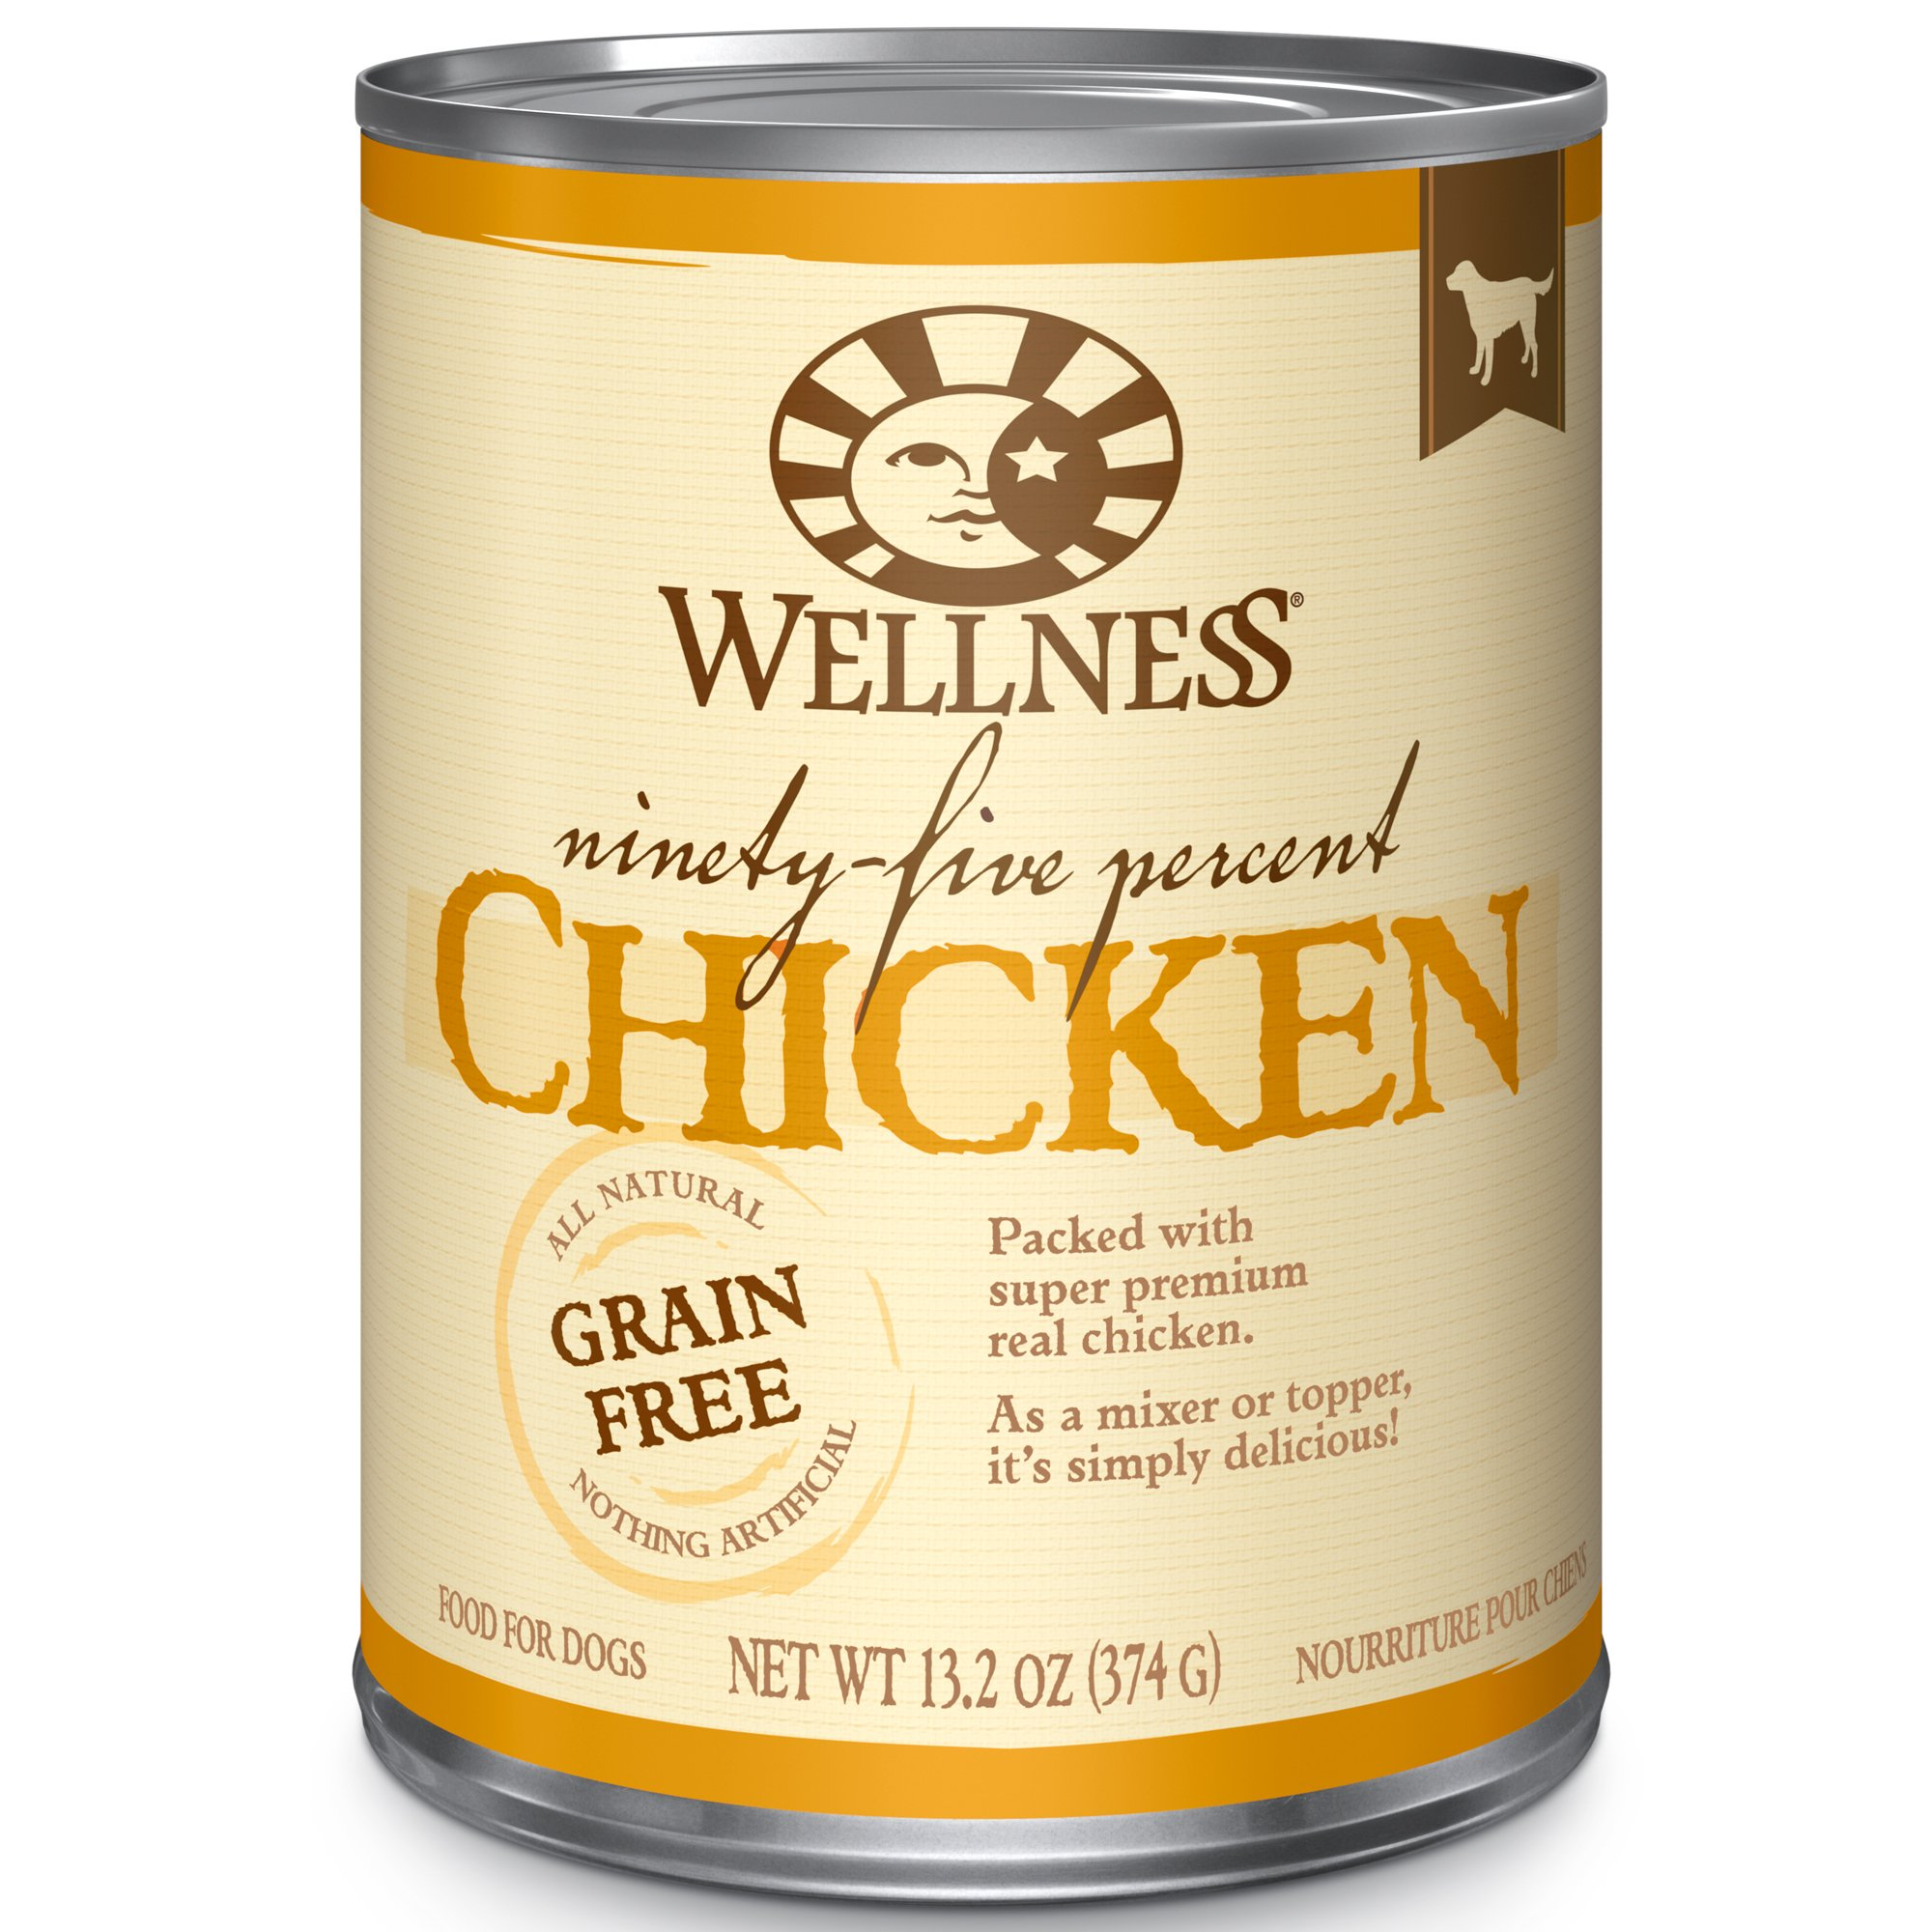 Wellness 95% Chicken Natural Wet Grain Free Canned Dog Food, 13.2-Ounce Can (Pack Of 12) by Wellness Natural Pet Food